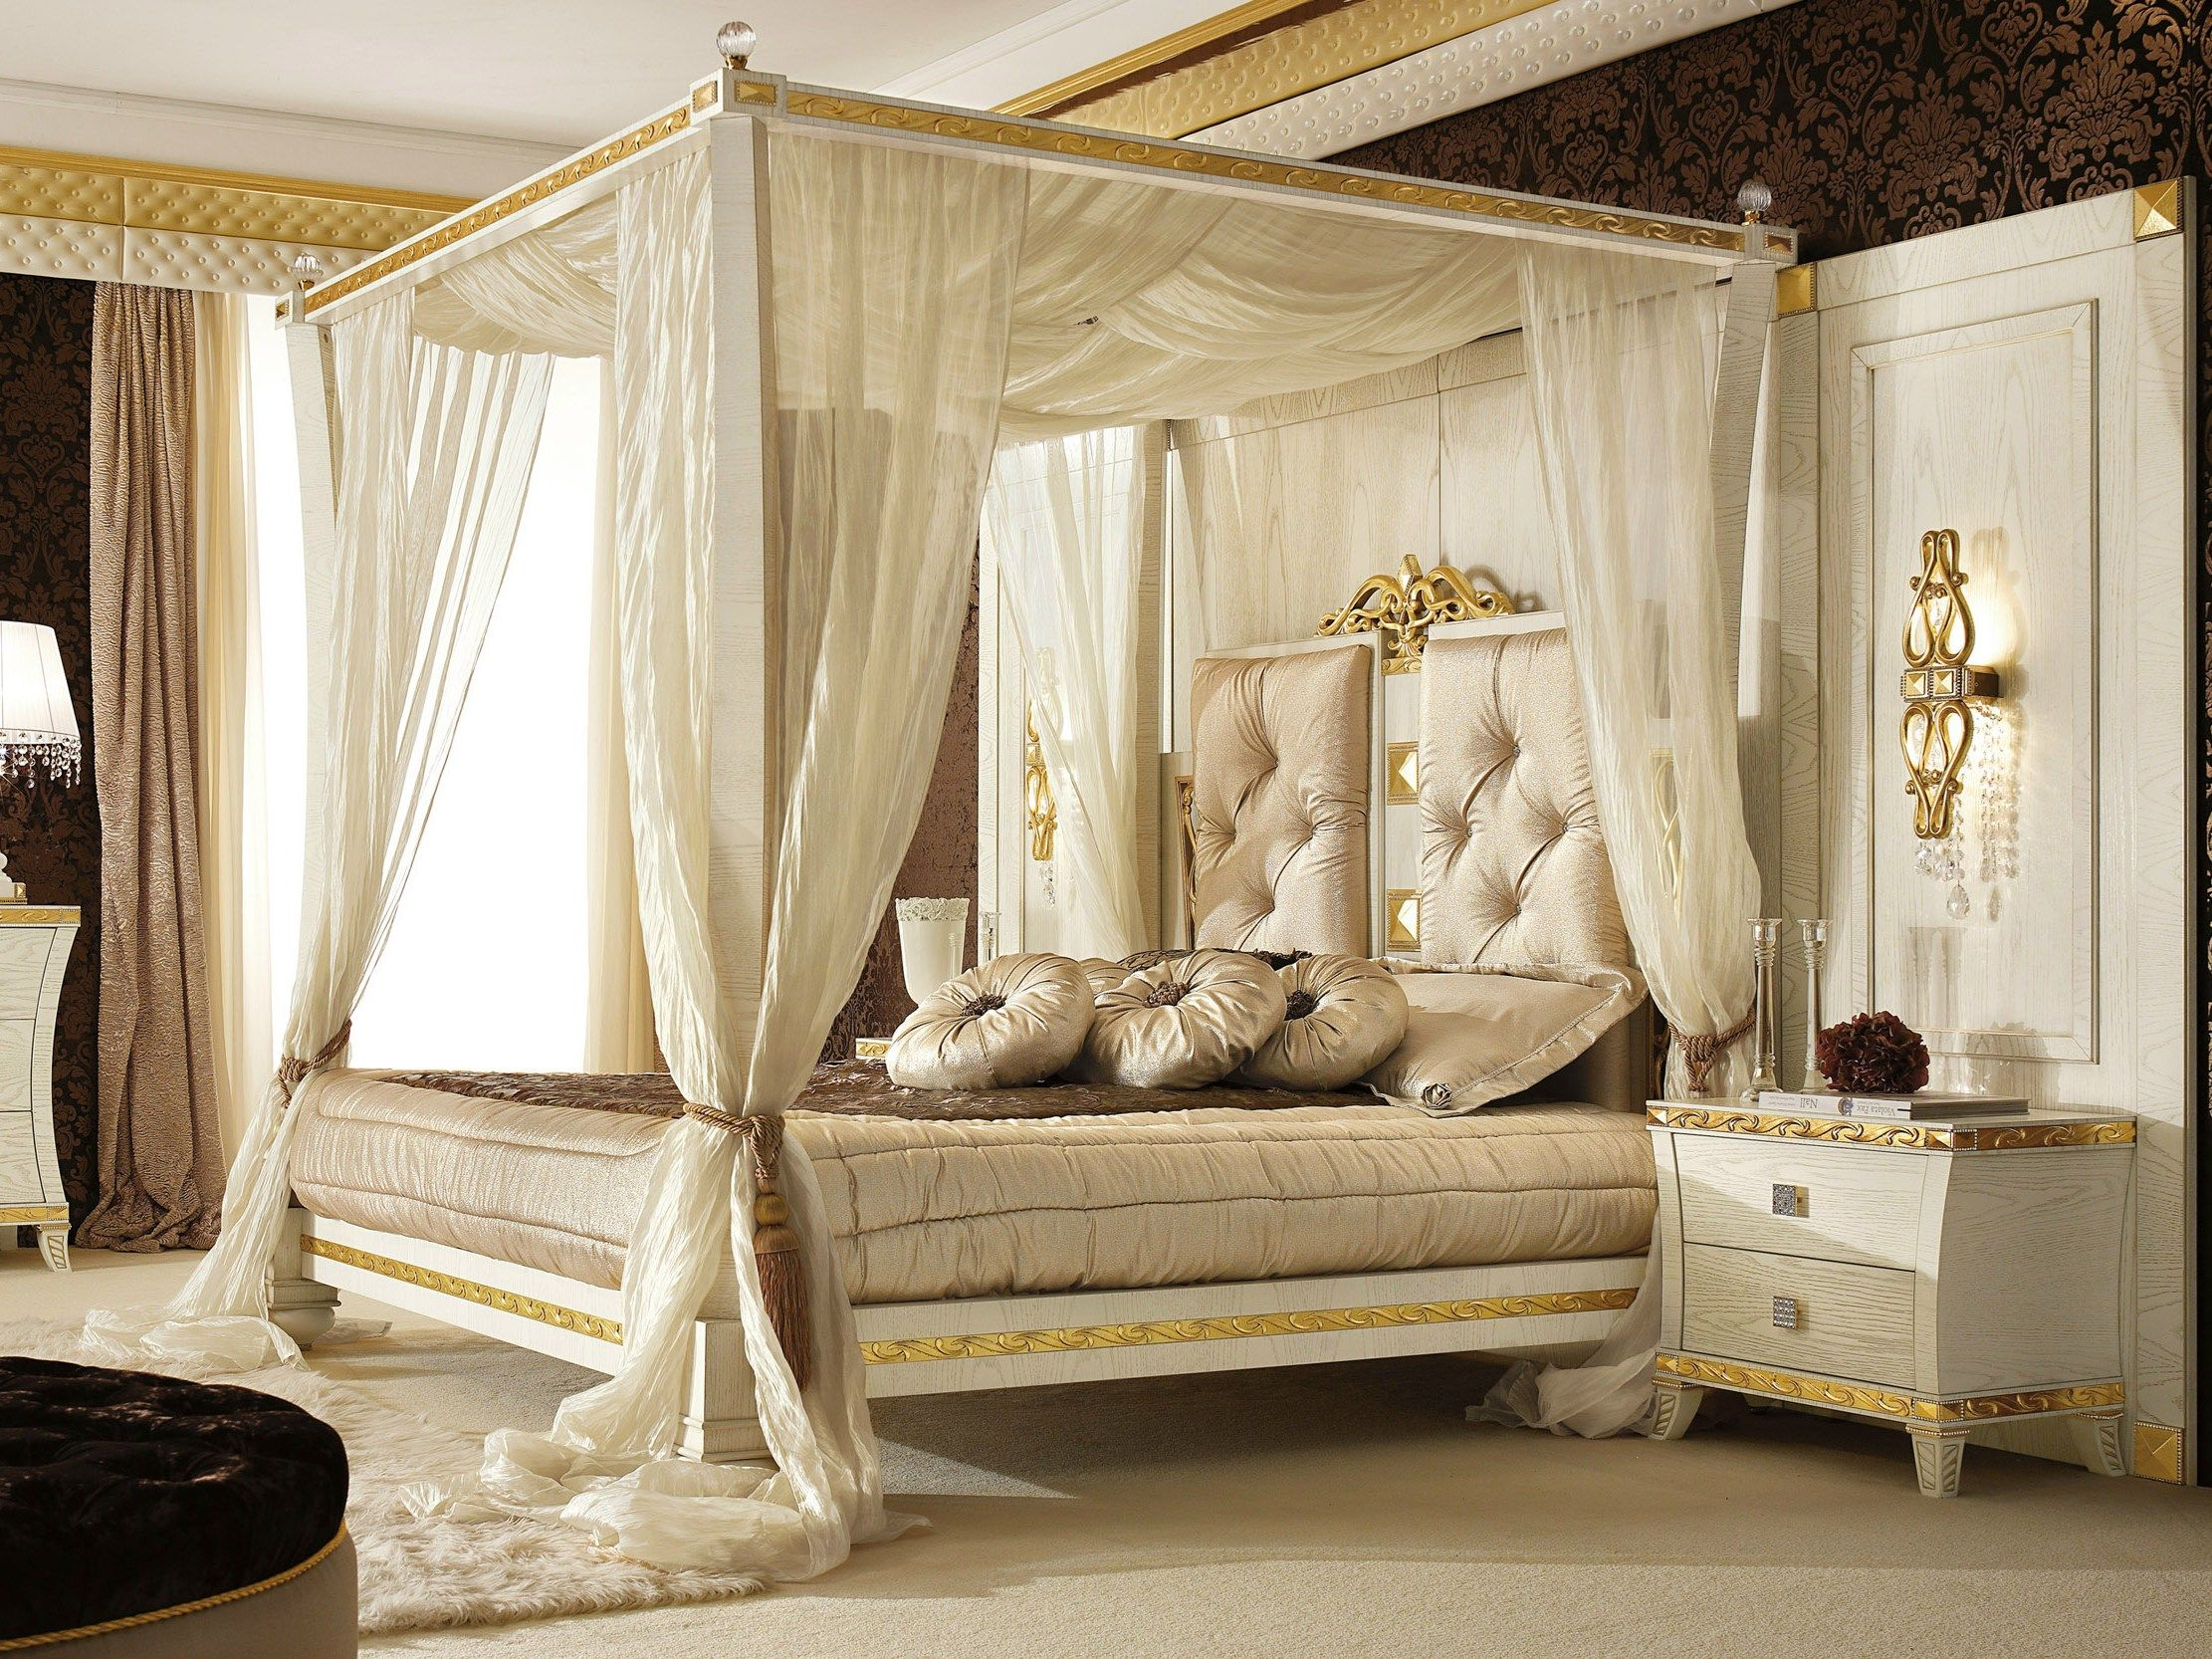 Modern canopy bed curtains - Canopy Bedroom Sets